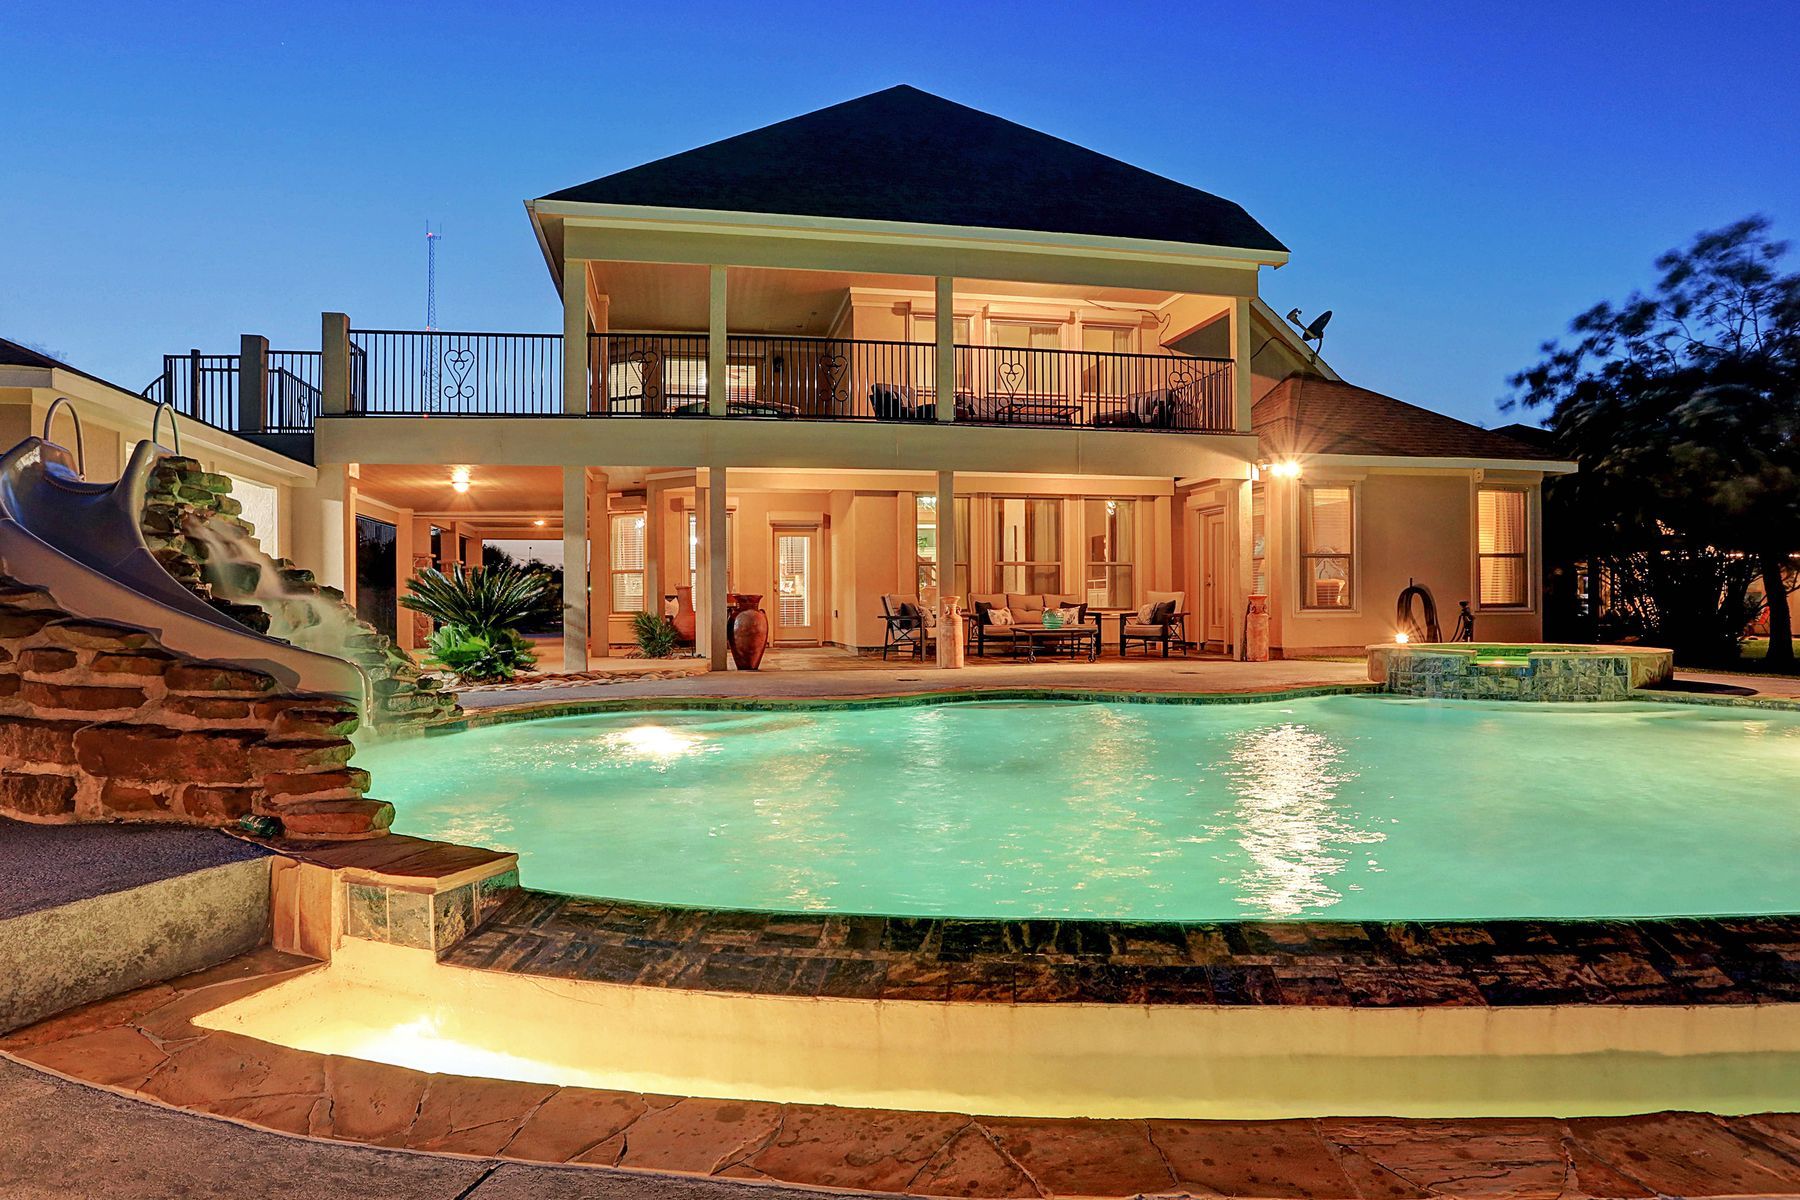 Single Family Homes for Sale at 12722 Tri City Beach Road Beach City, Texas 77523 United States